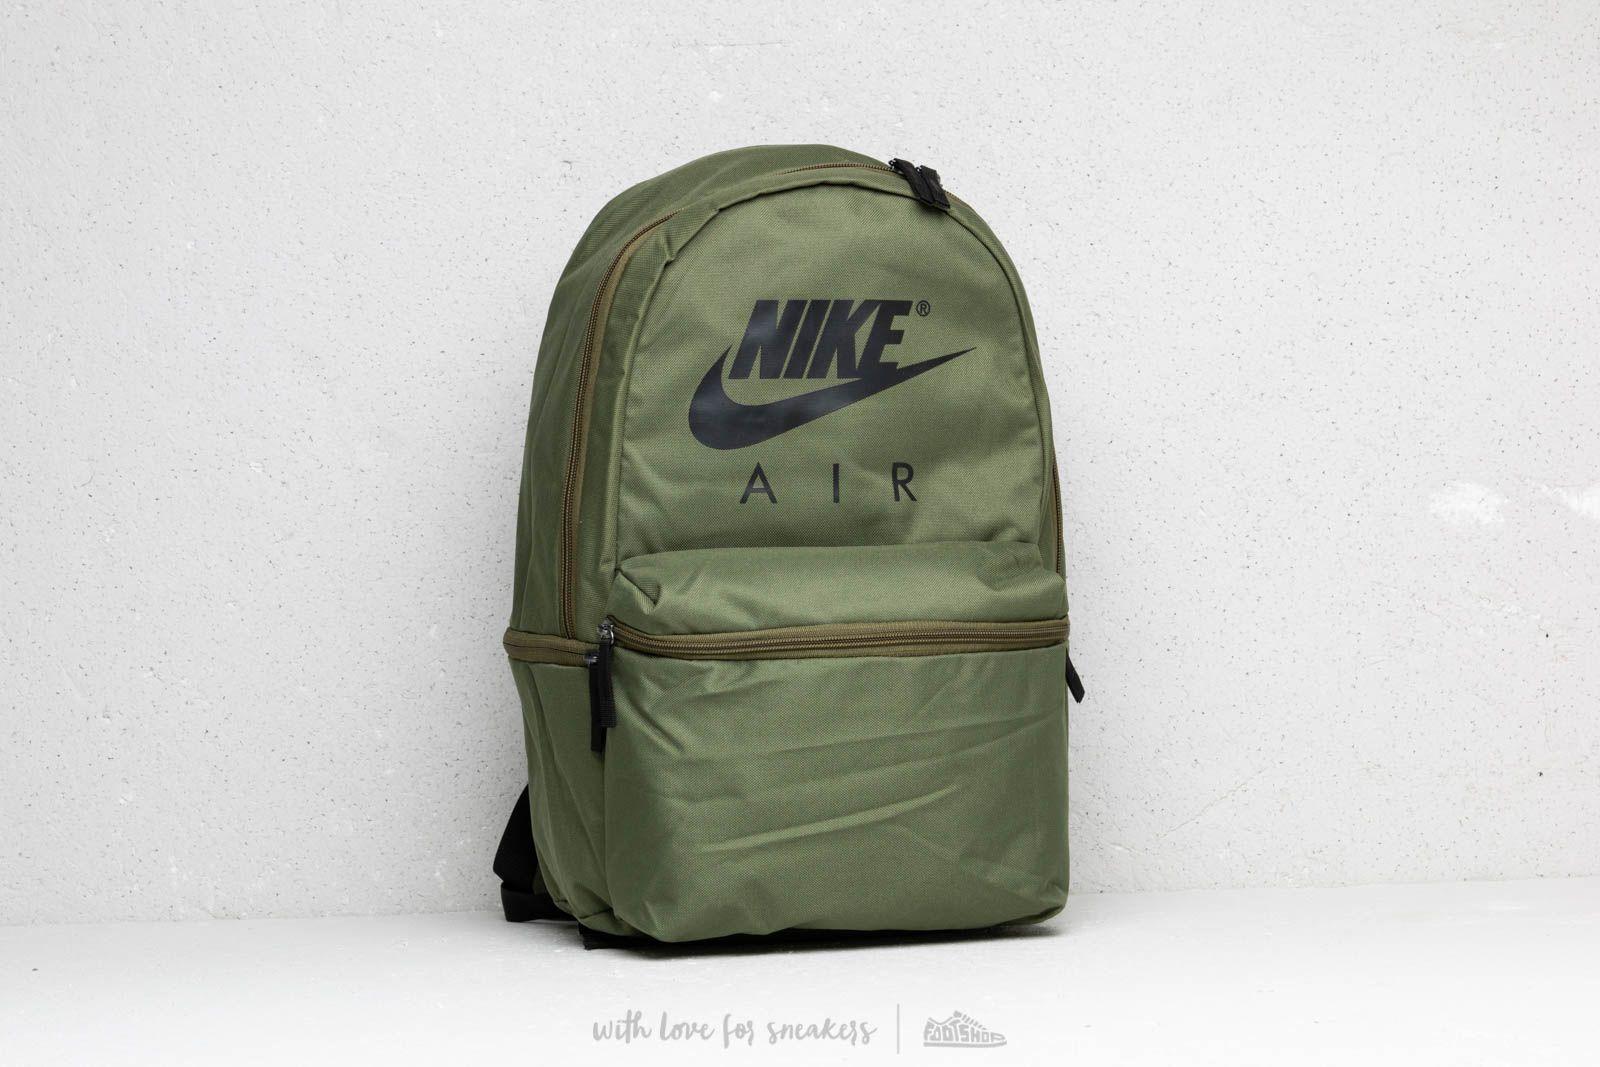 f8391d0a79dce Nike Air Backpack Olive Green